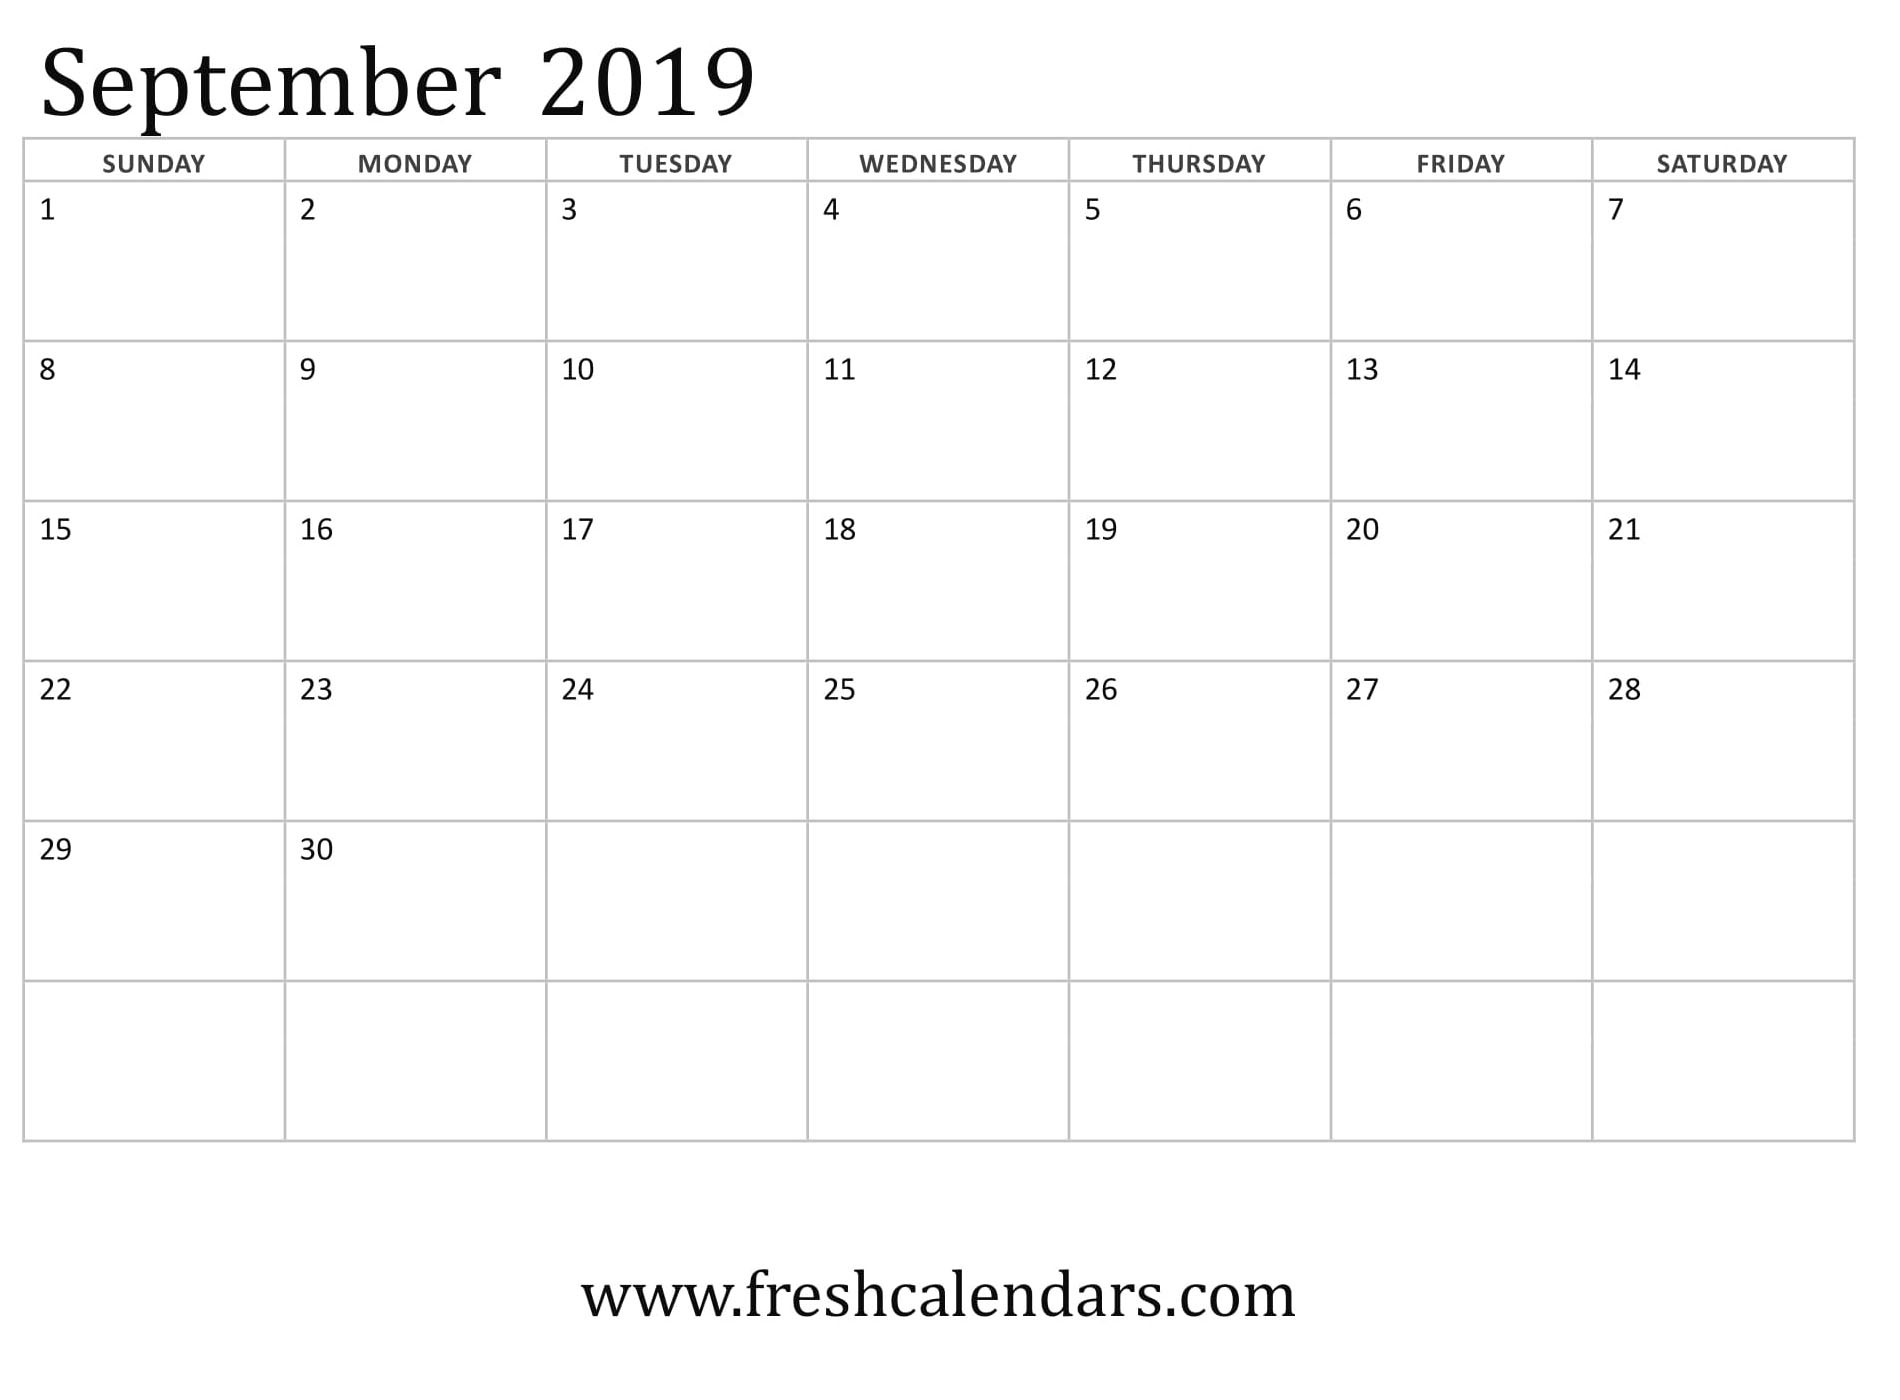 September 2019 Calendar Basic Template